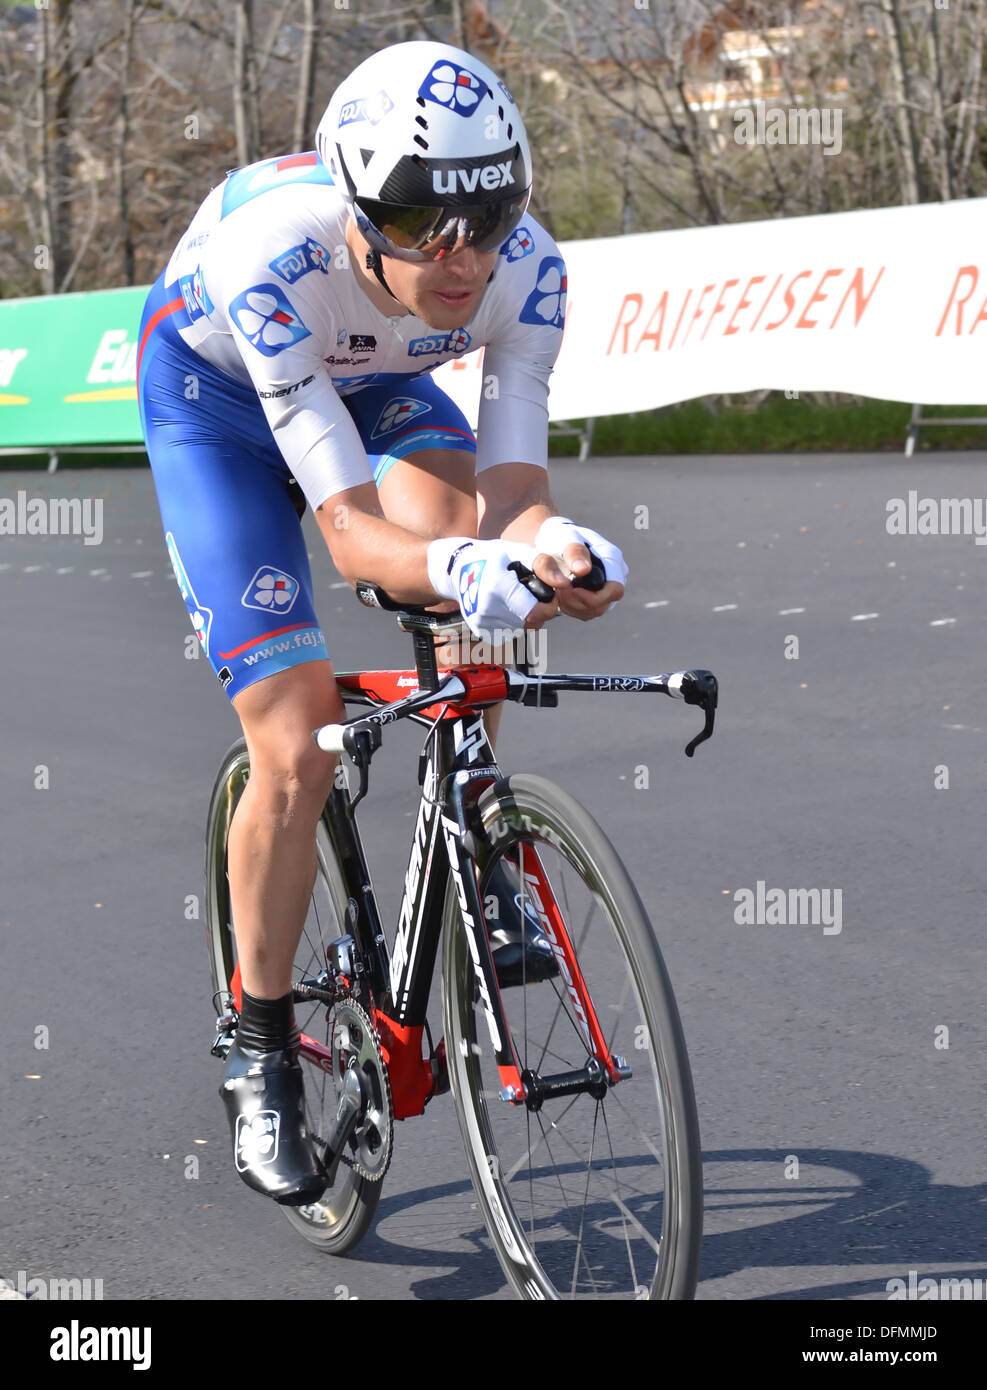 Jeremy ROY of team FDJ on stage 1 of the Tour de Romandie 2013: April 23, 2013 in Verbier, Switzerland - Stock Image